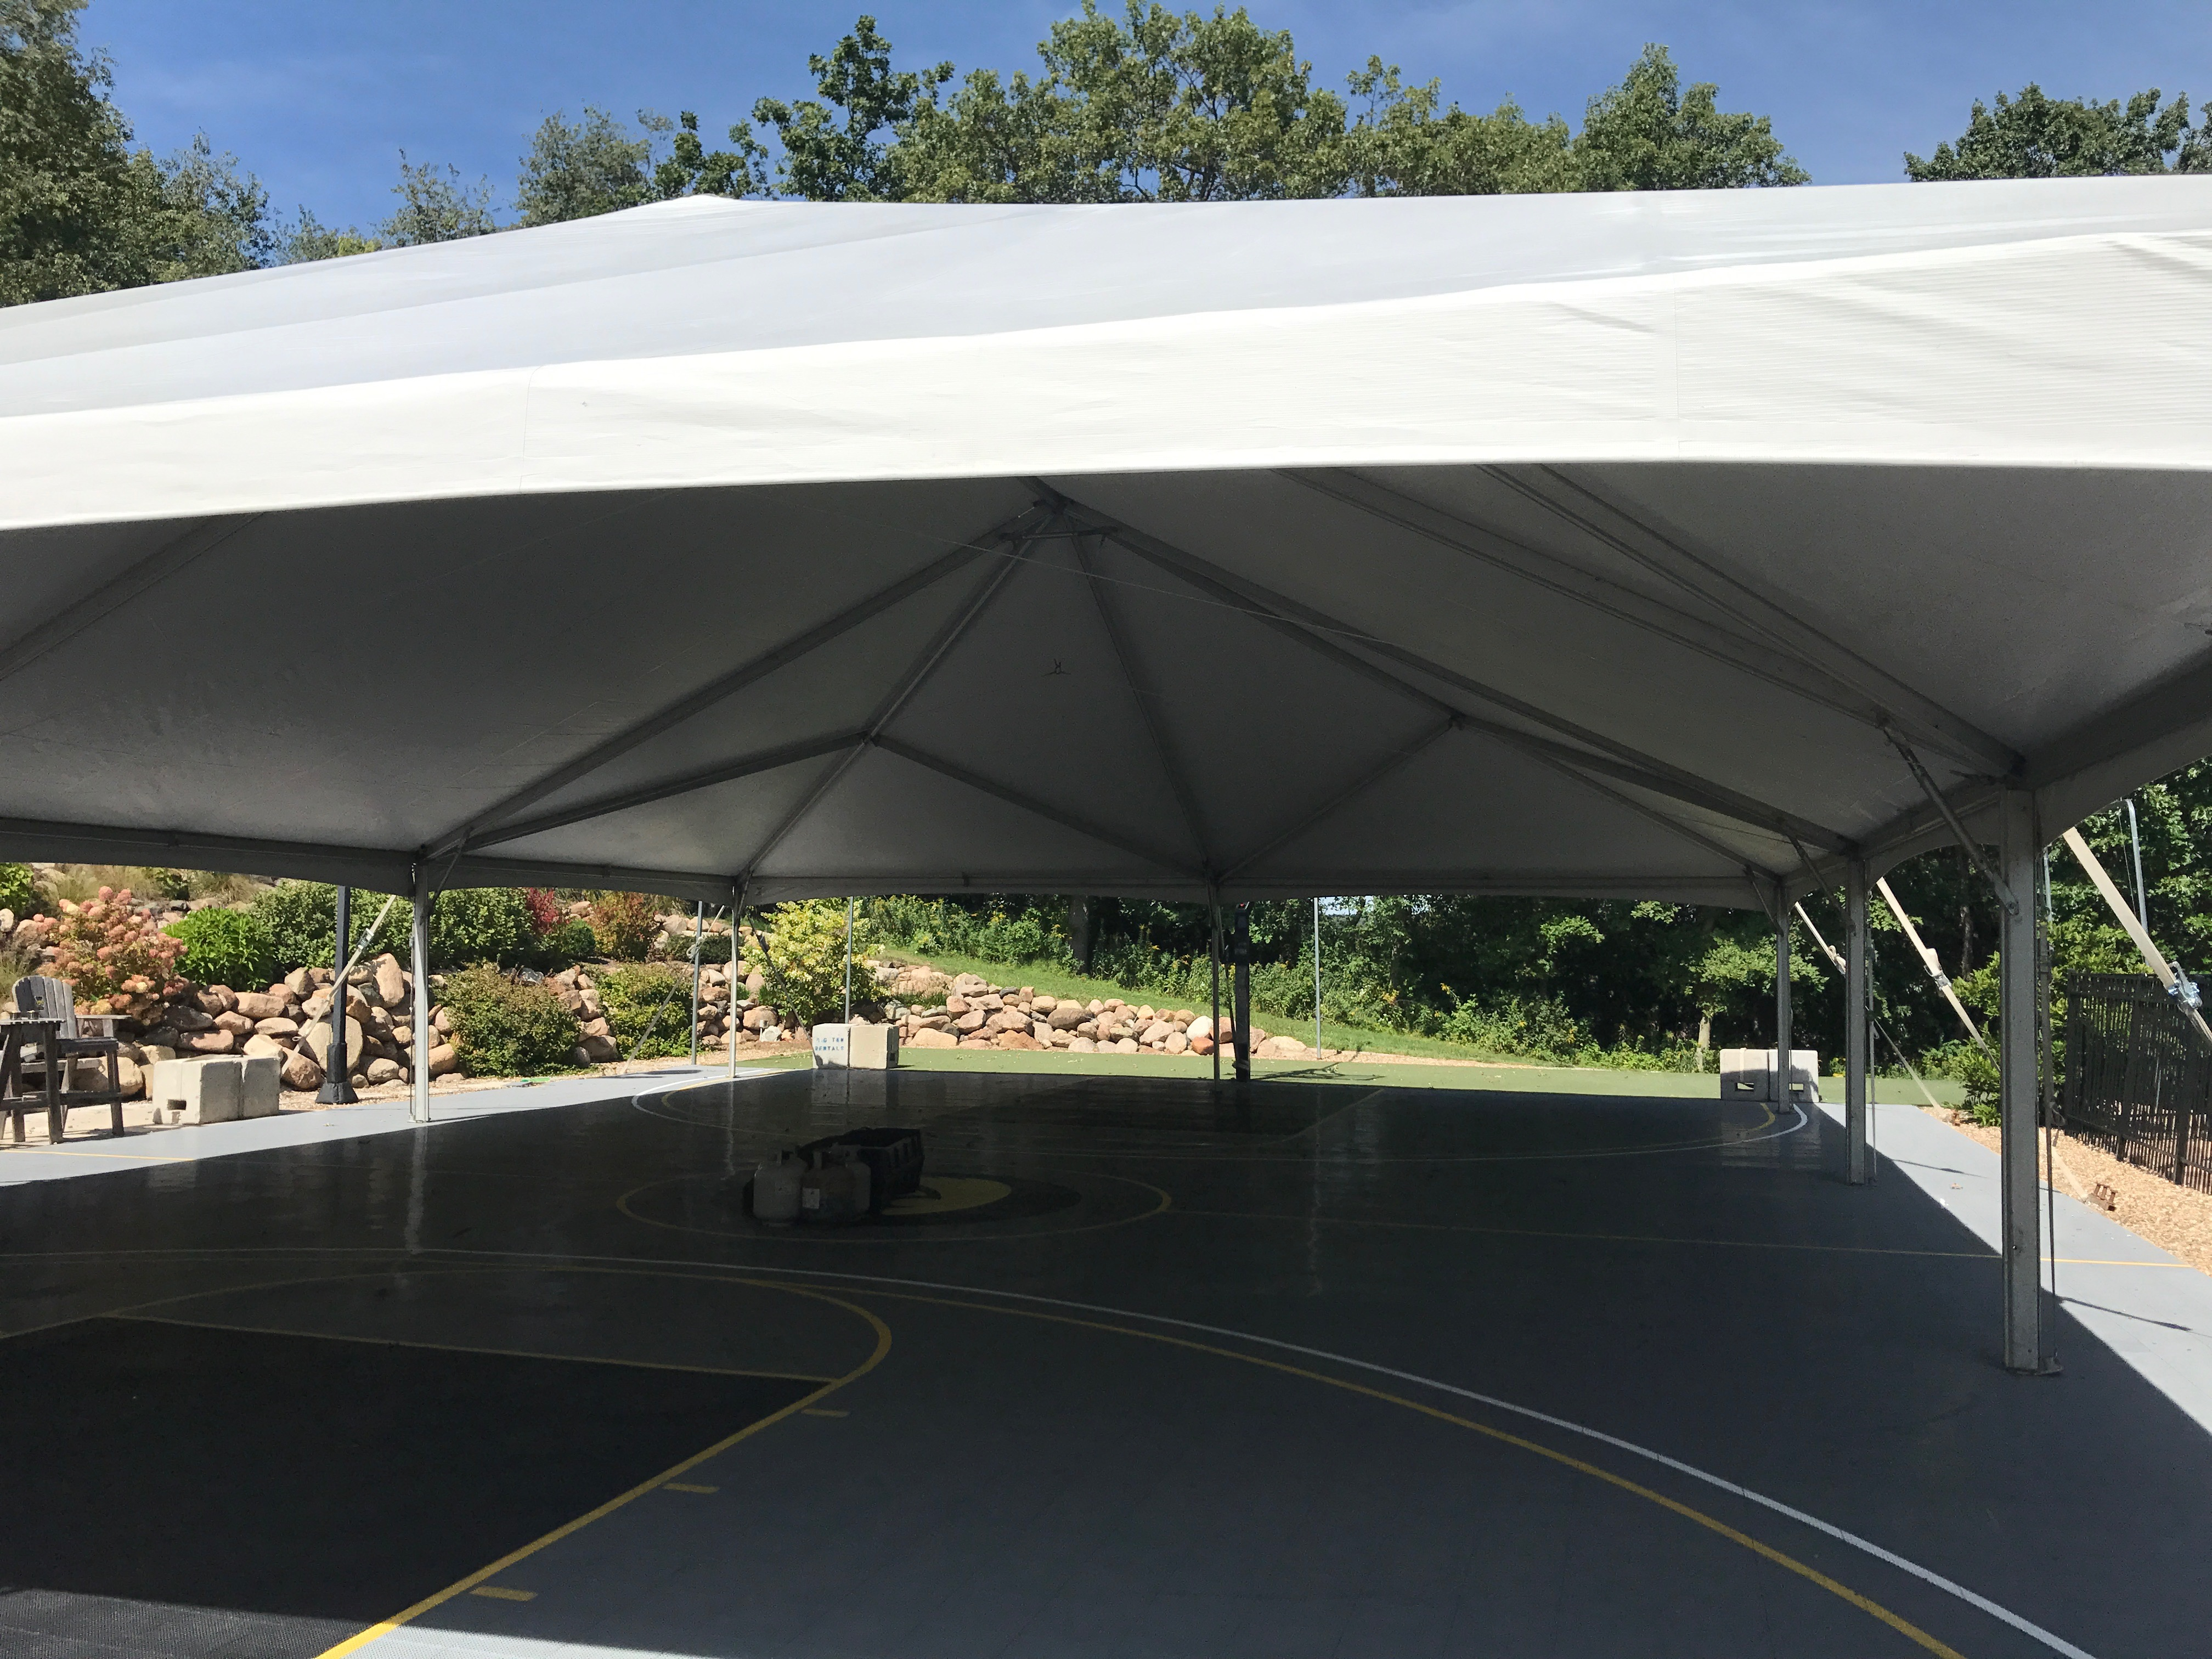 Under the 40' x 60' hybrid event tent setup on a Basketball court in Coralville, IA